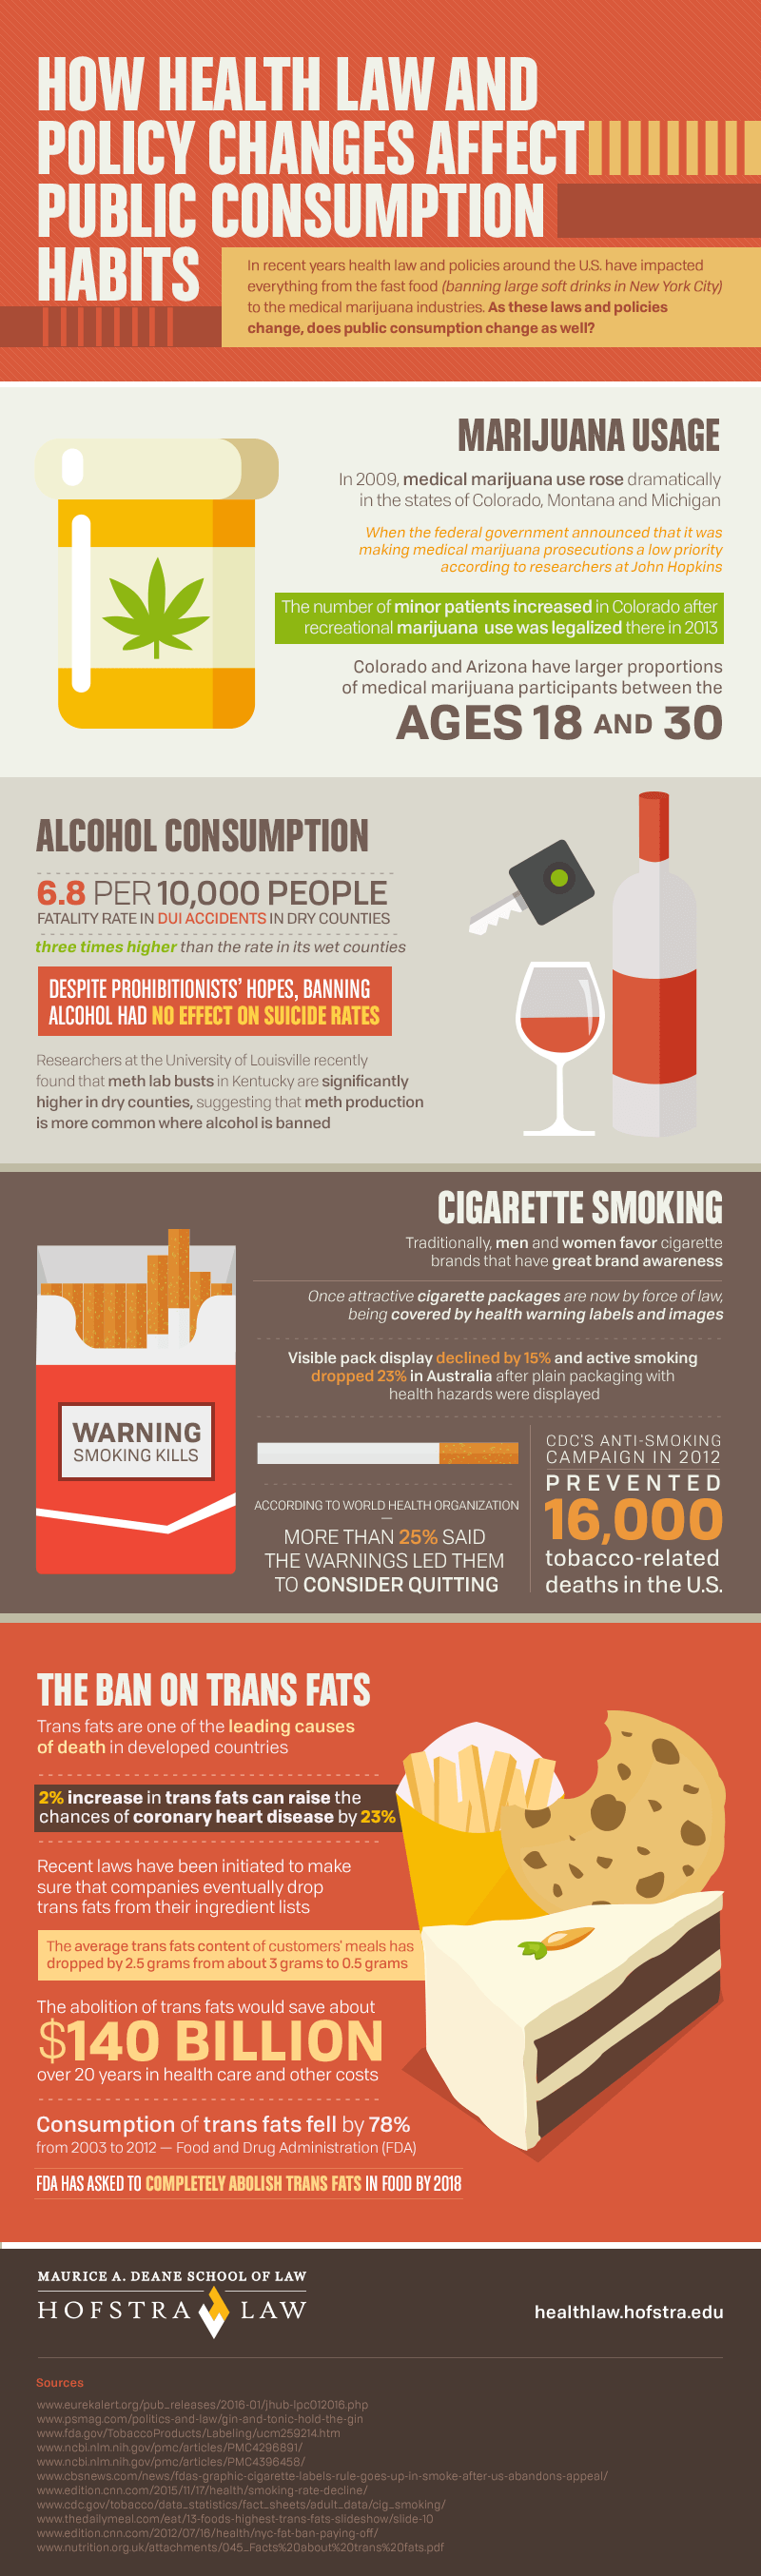 Infographic on How Health Law and Policy Changes Affect Public Consumption Habits